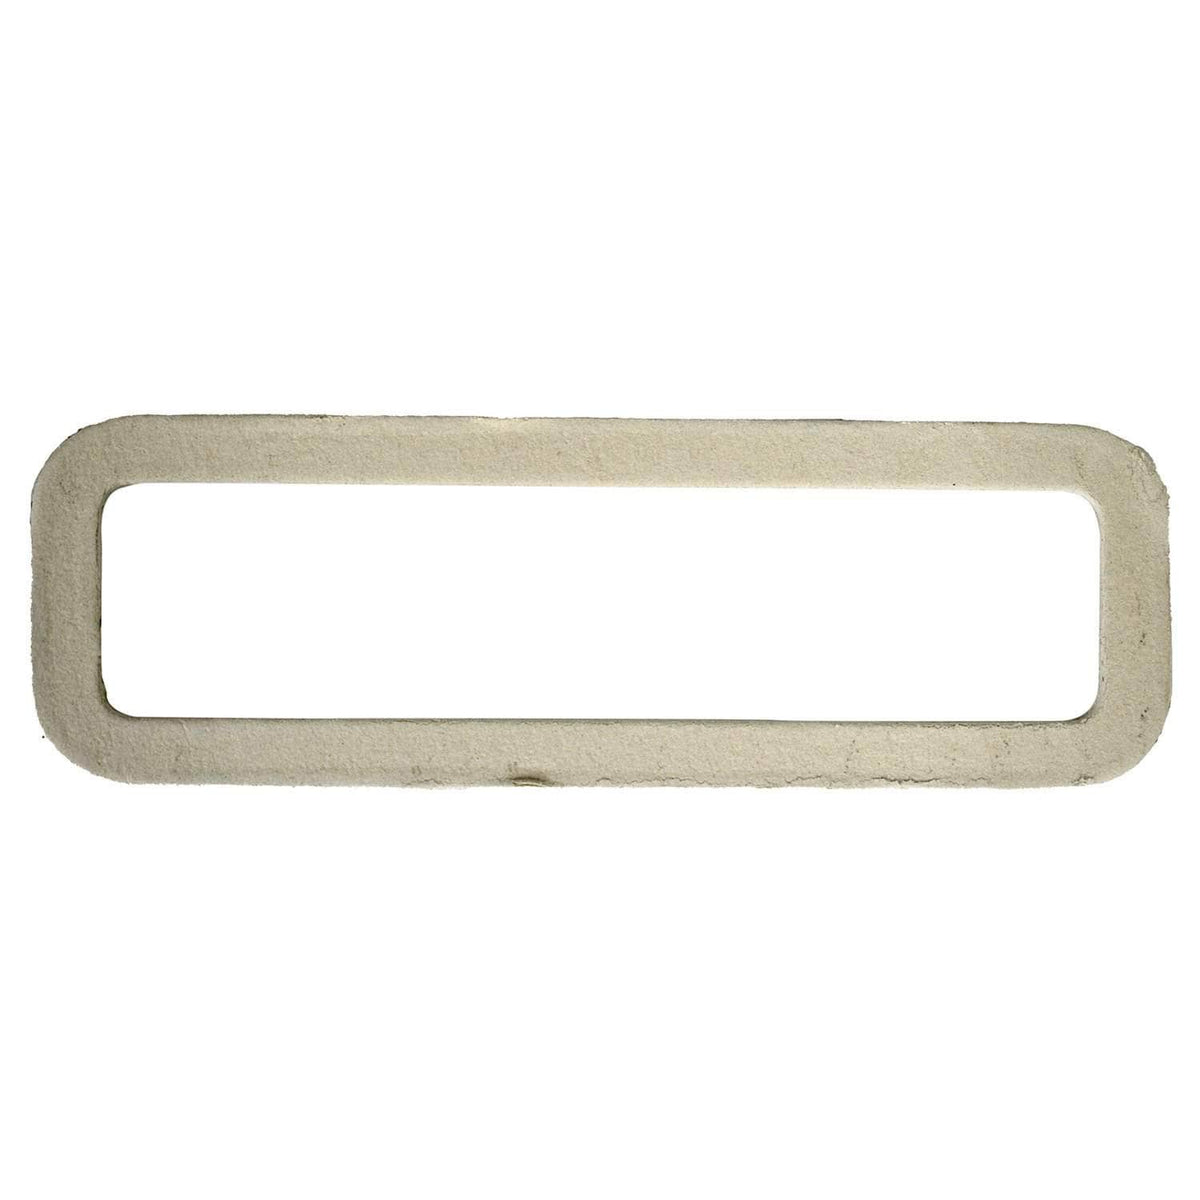 Barrel gasket for use with Aga range cookers